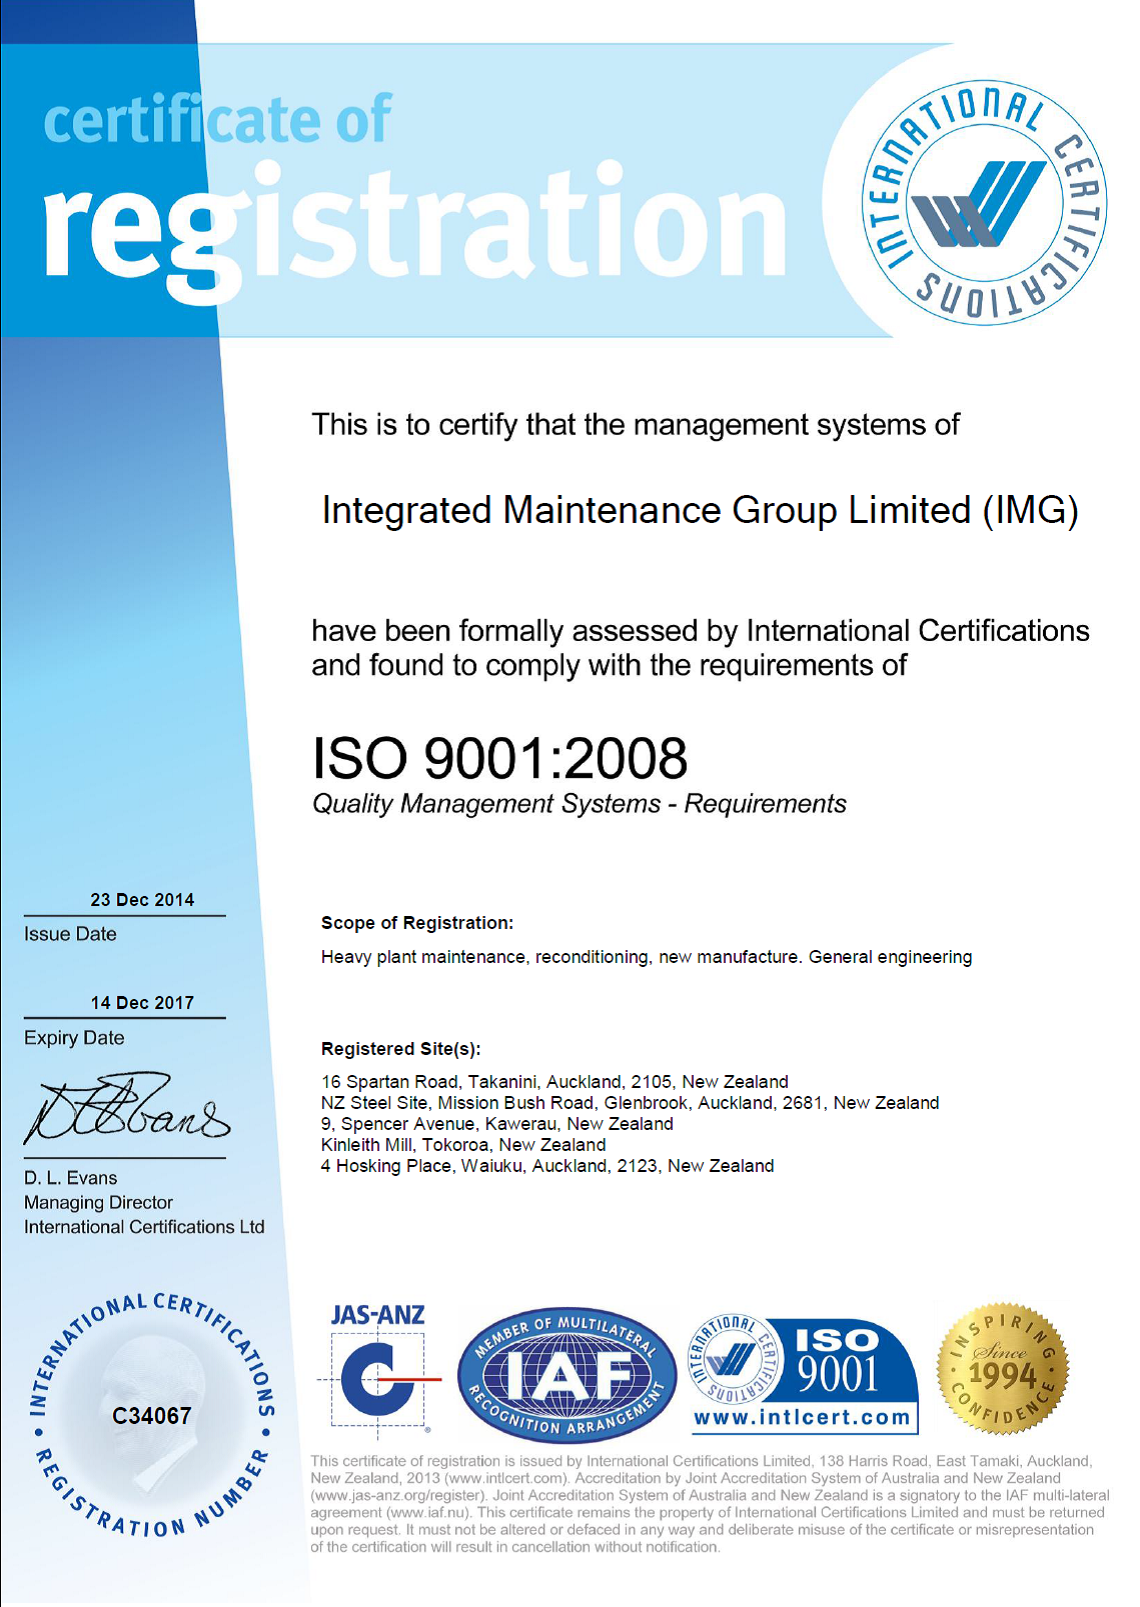 IMG Certificate of Registration